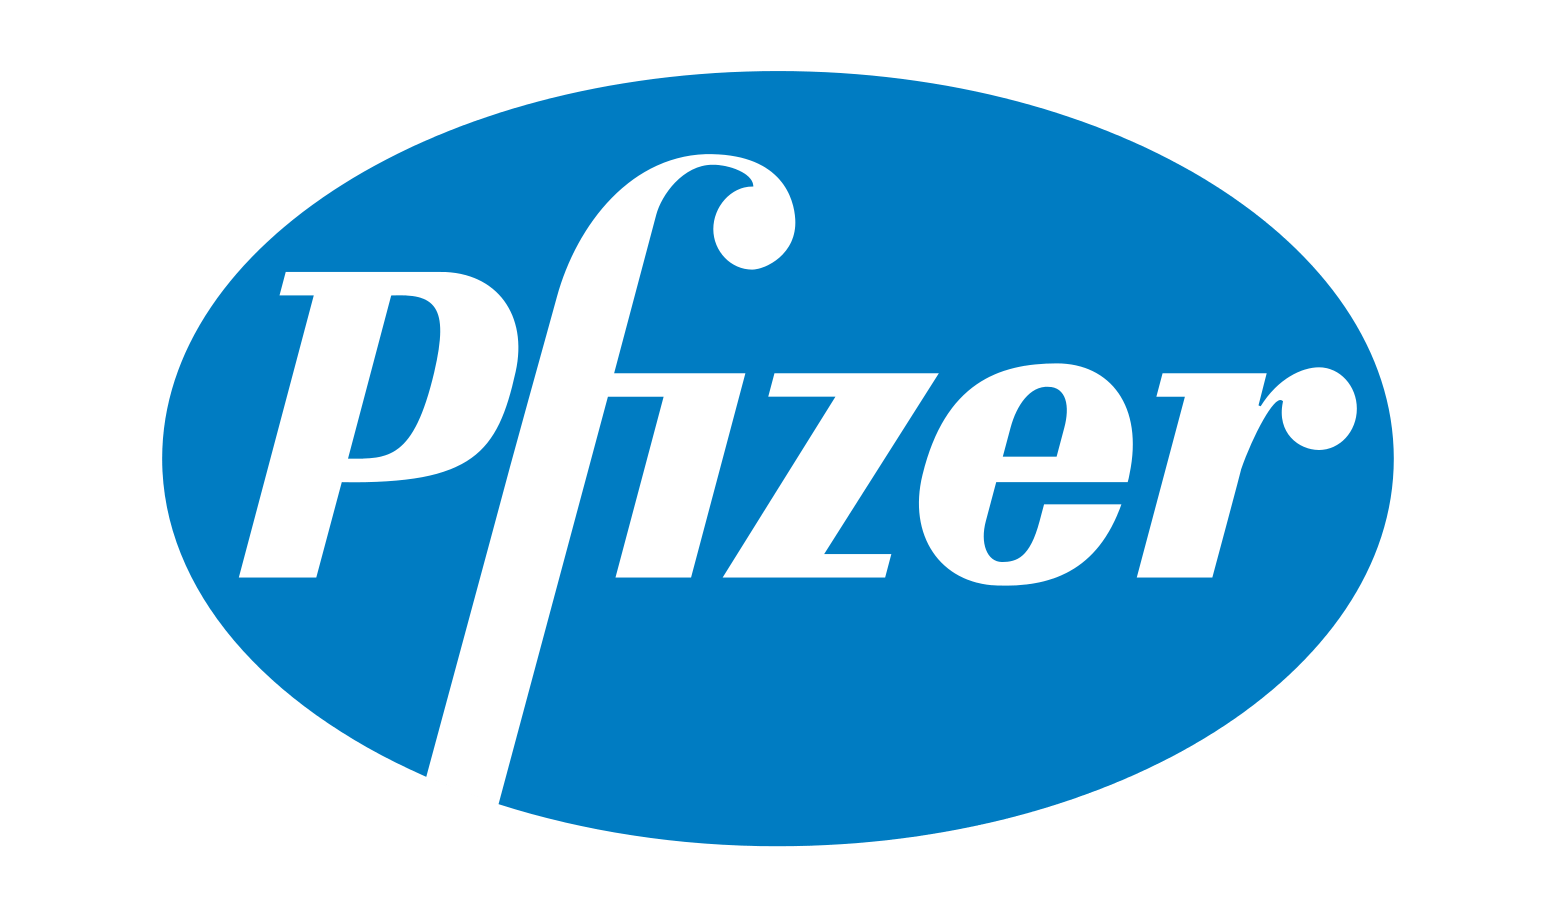 Pfizer - Regulatory & Compliance